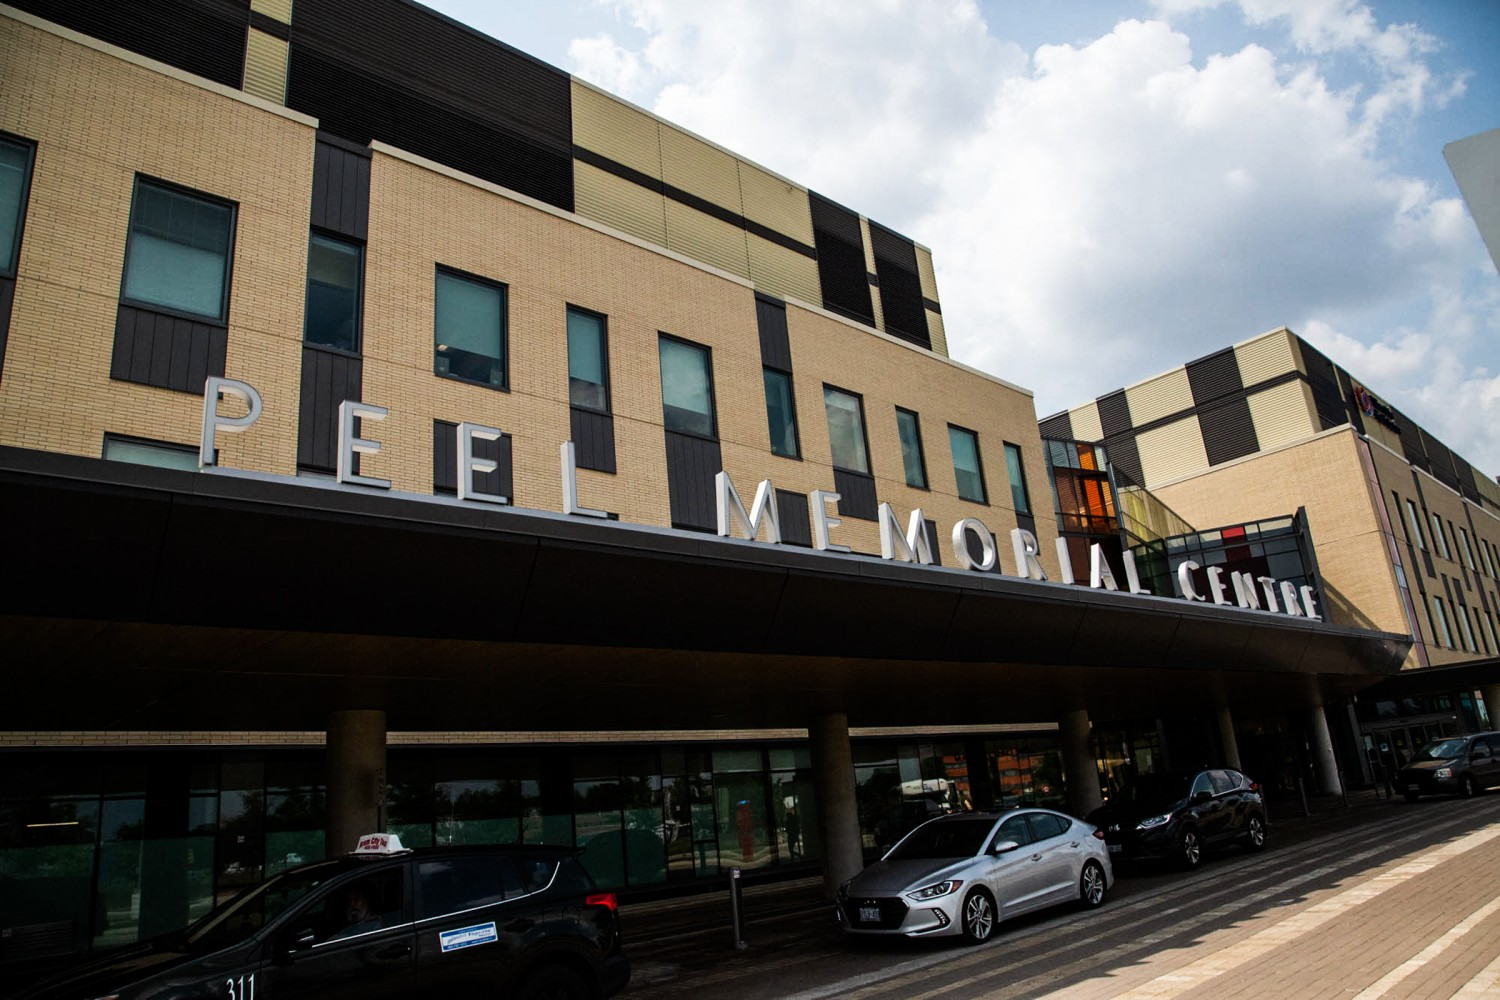 Osler closes Peel Memorial urgent care to focus COVID-19 efforts at Civic; number of new cases appears to slow; schools will not open before June